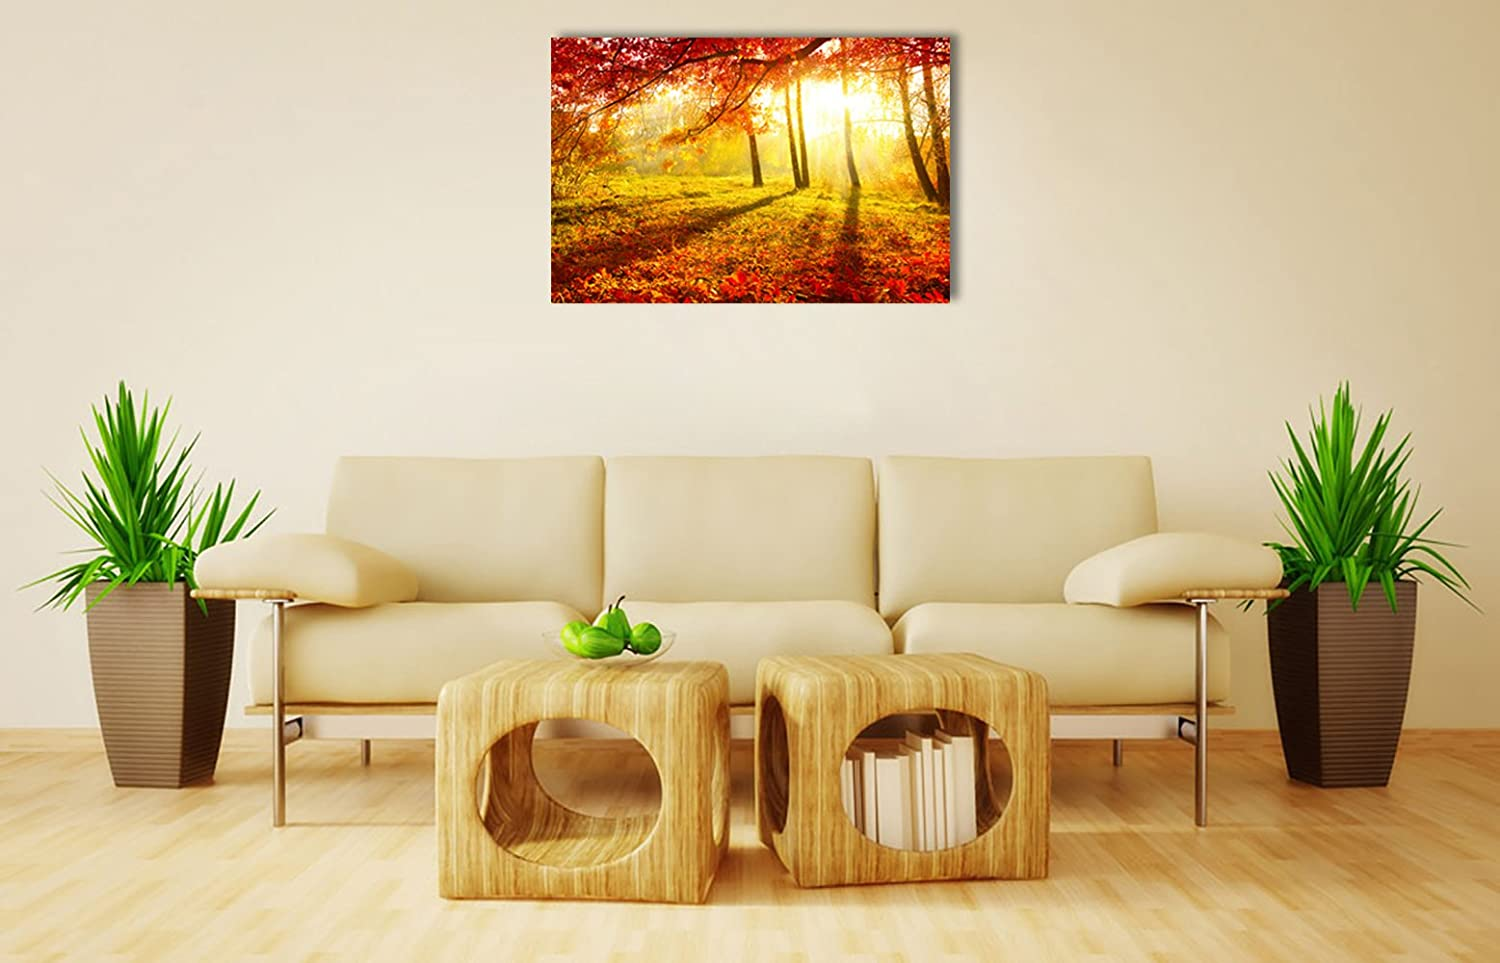 Amazon.com: Red Maple Leaves Autumn Forest Sunshine Wall Art Large ...